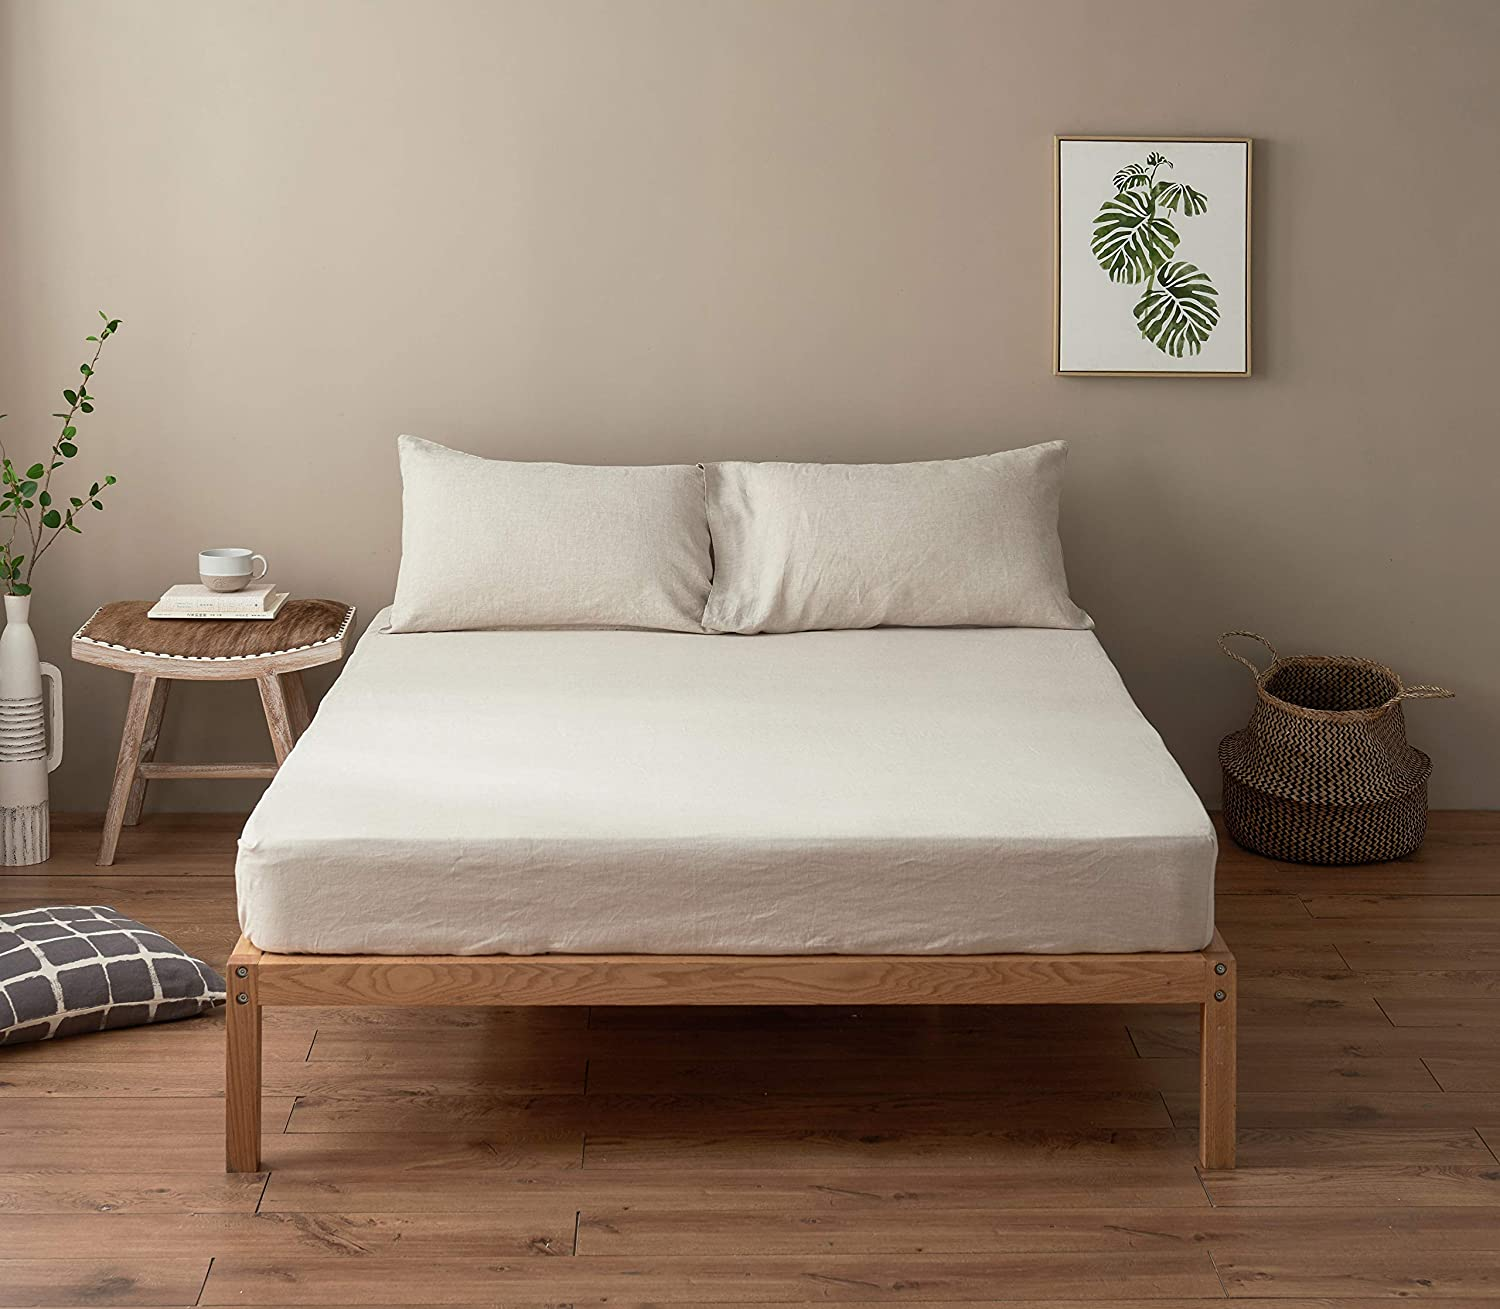 Natural Linen, Twin DAPU Pure Stone Washed Linen Fitted Sheet 100/% French Natural Linen European Flax